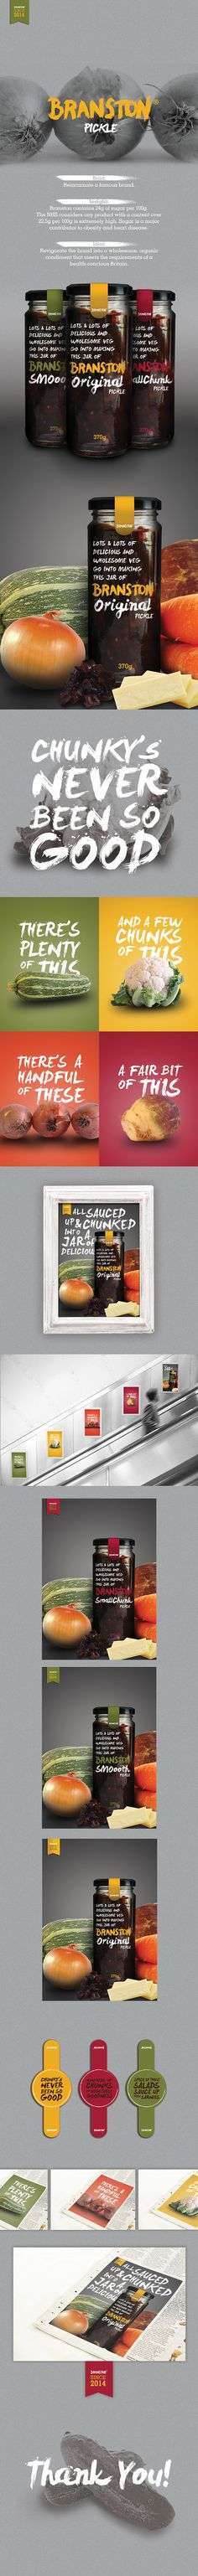 DesignBridge 2014 Branston Pickle on Behance